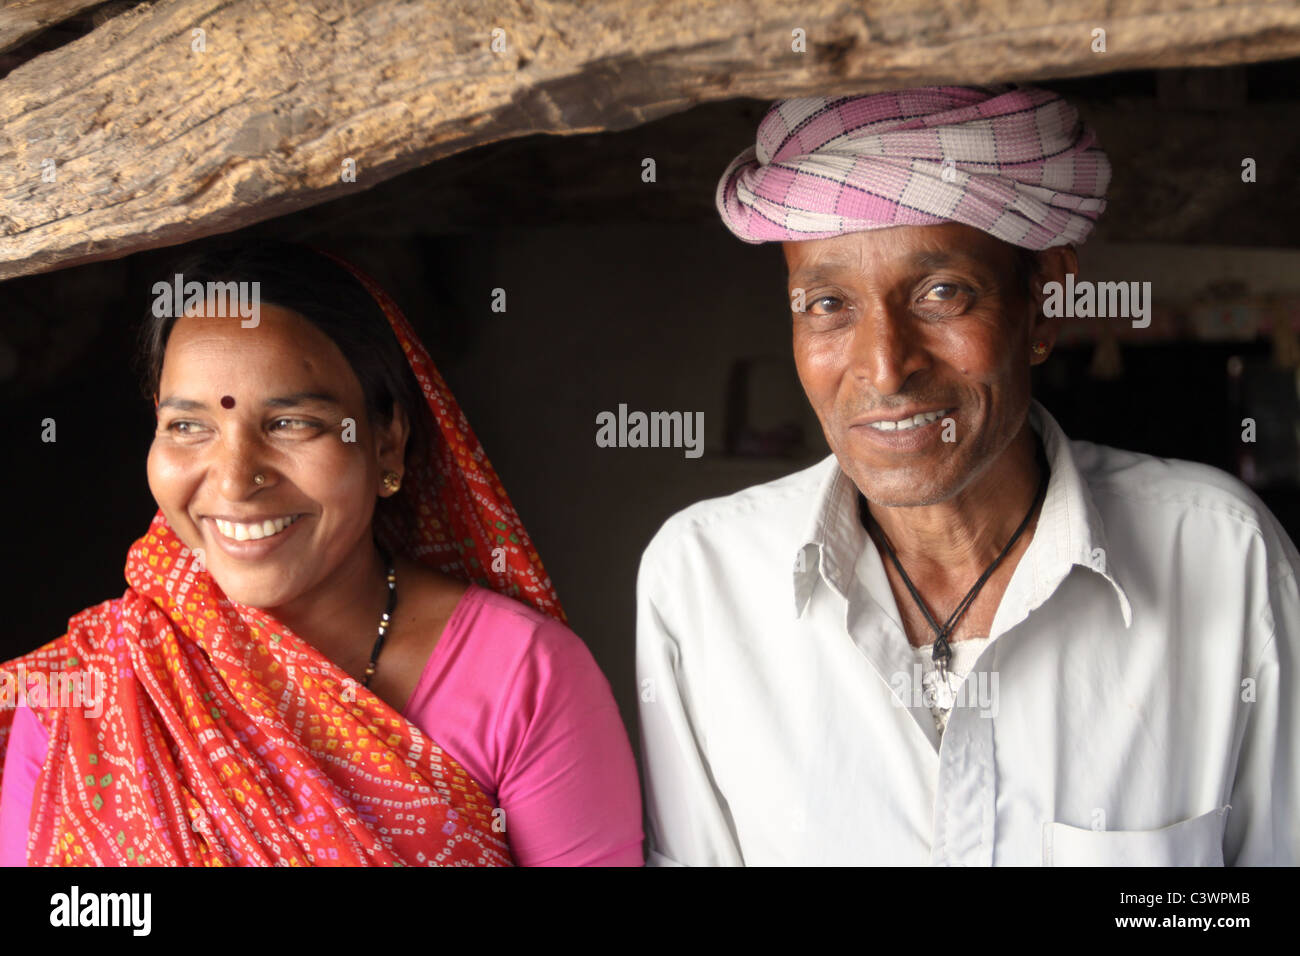 A tribal couple dressed in traditional clothes in Udaipur, Rajasthan, India - Stock Image